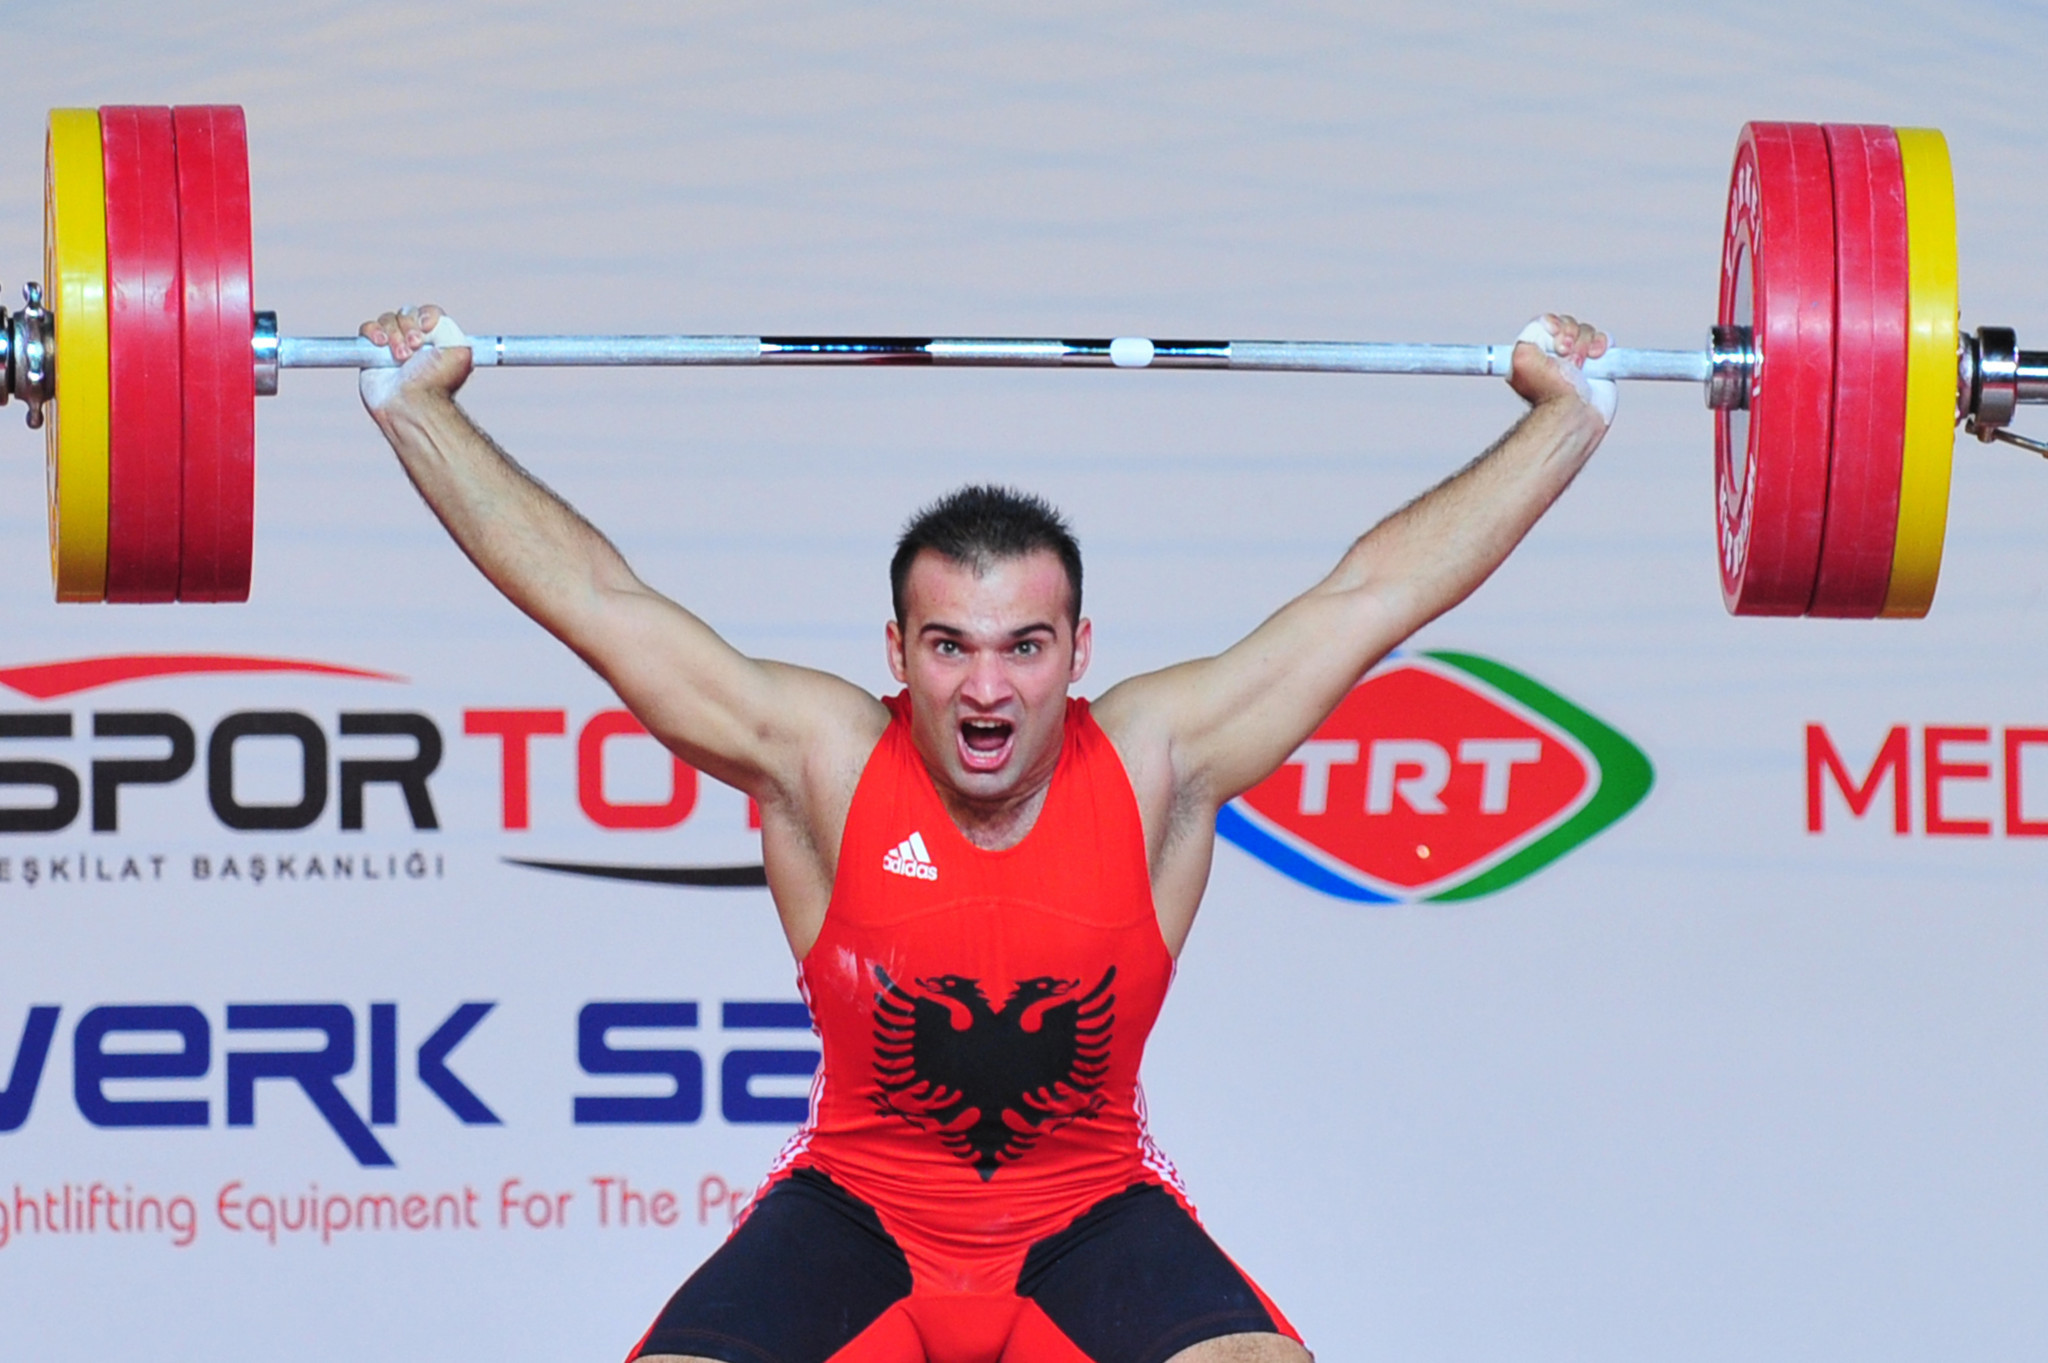 Erkand Qerimaj is another of Albania's weightlifters but the sport in the country is in crisis ©Getty Images